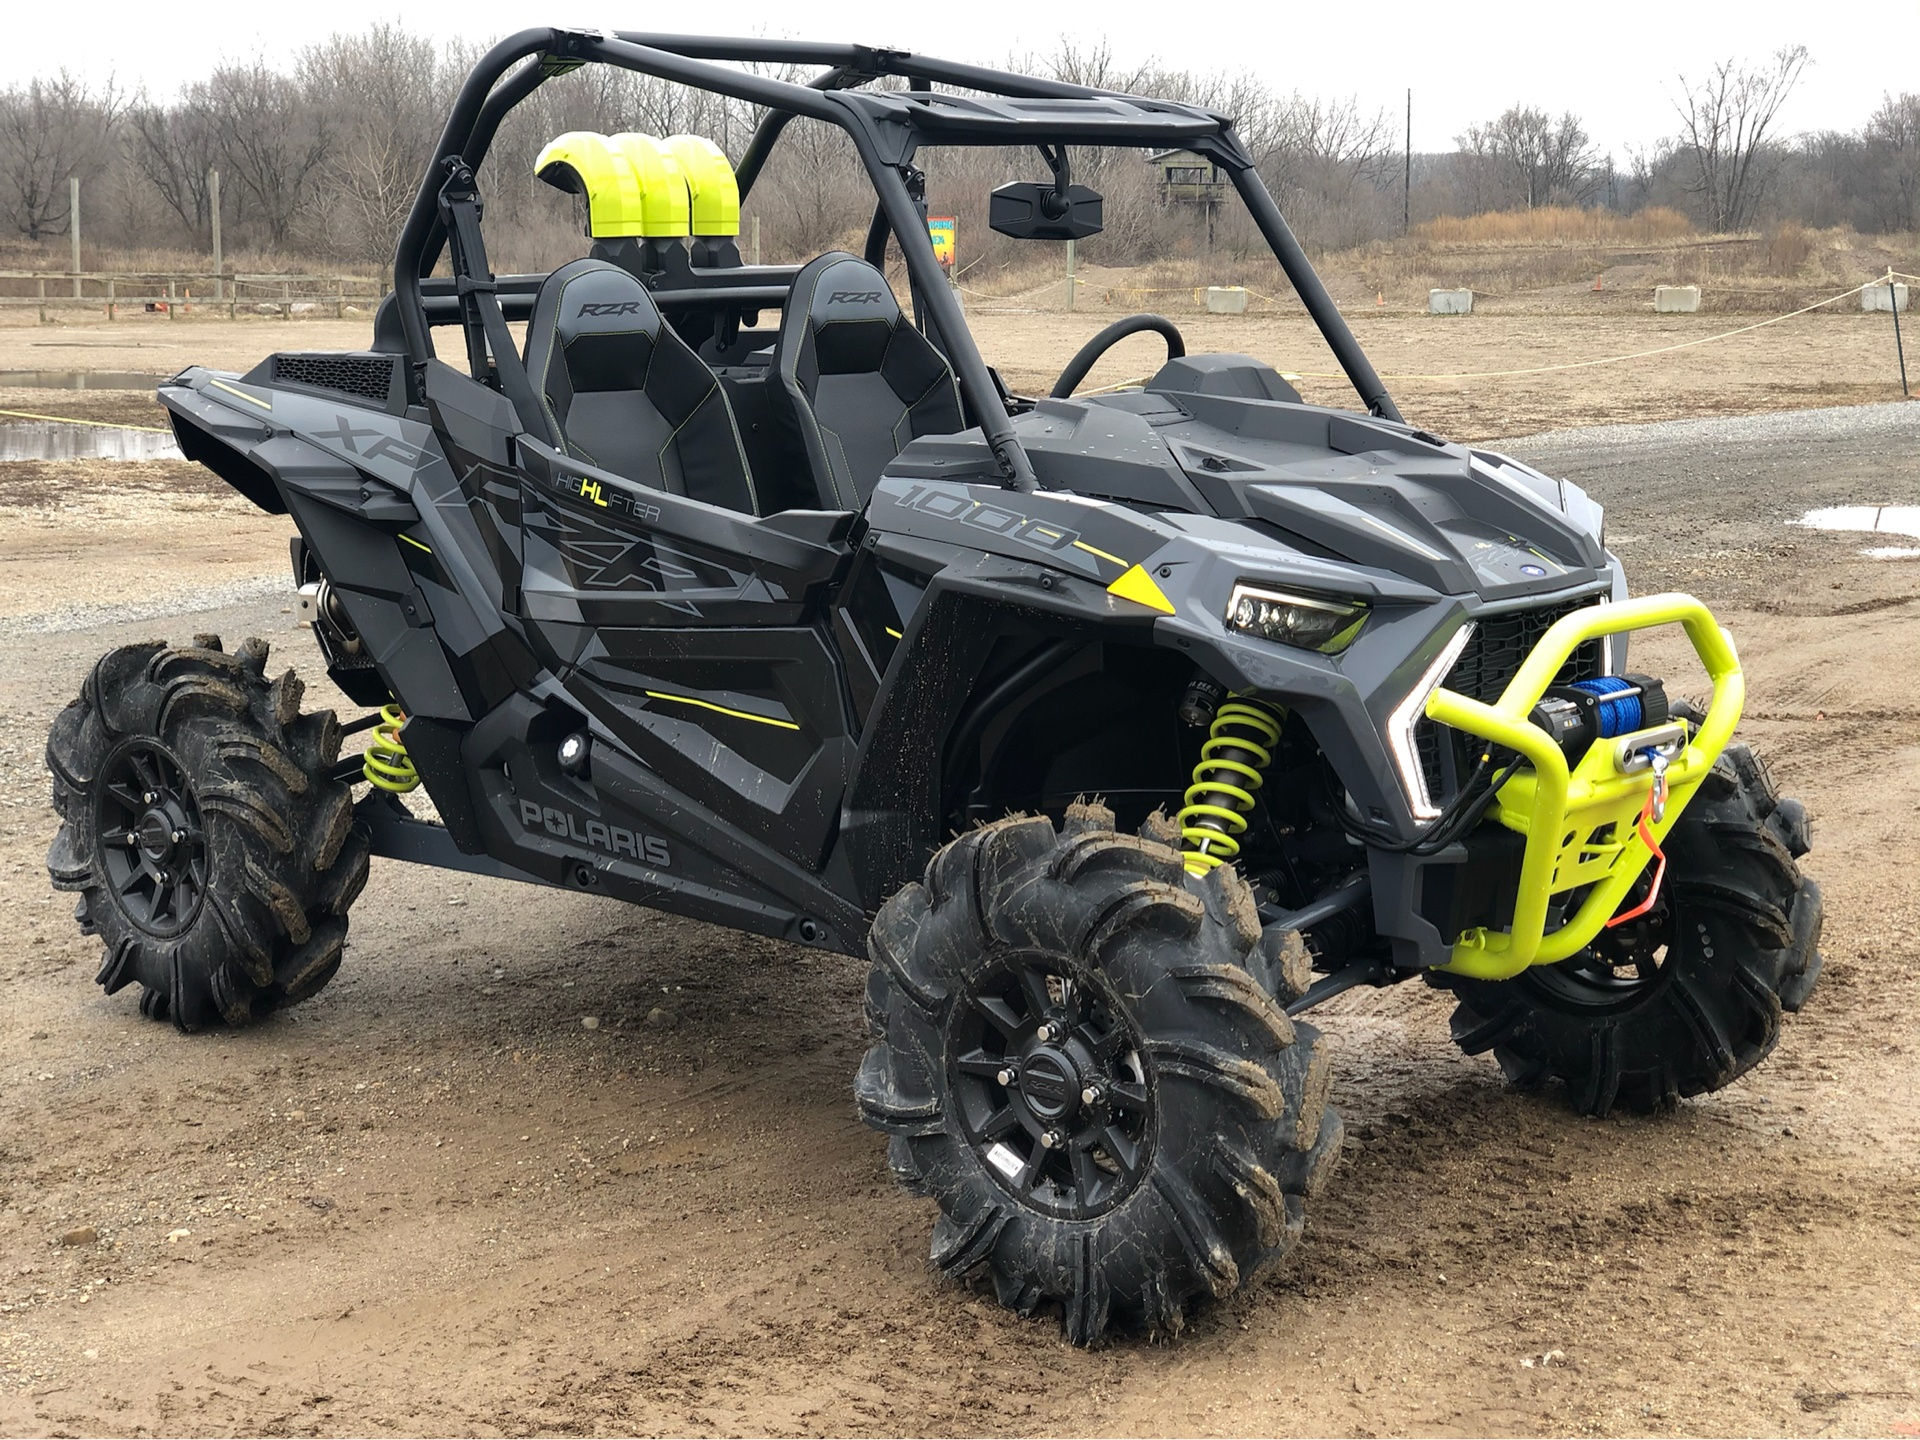 2020 Polaris RZR XP 1000 High Lifter in Attica, Indiana - Photo 8